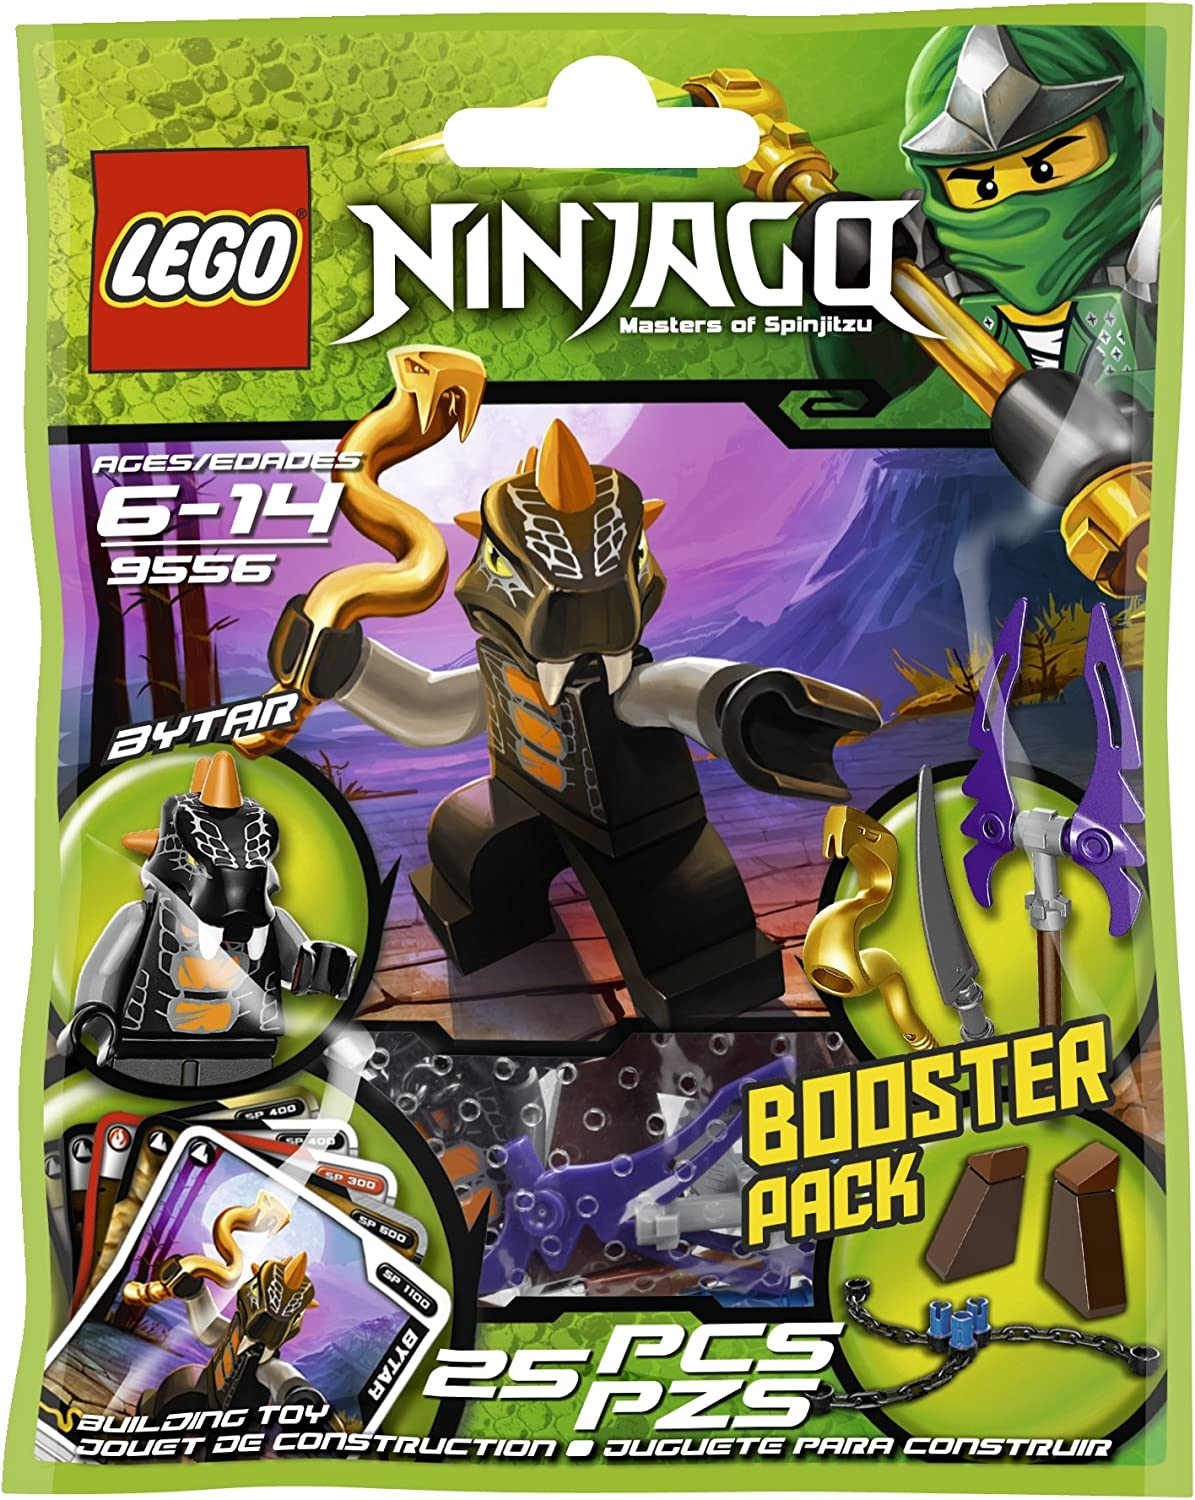 Lego Ninjago Bytar NEW IN PACKAGE. 9556